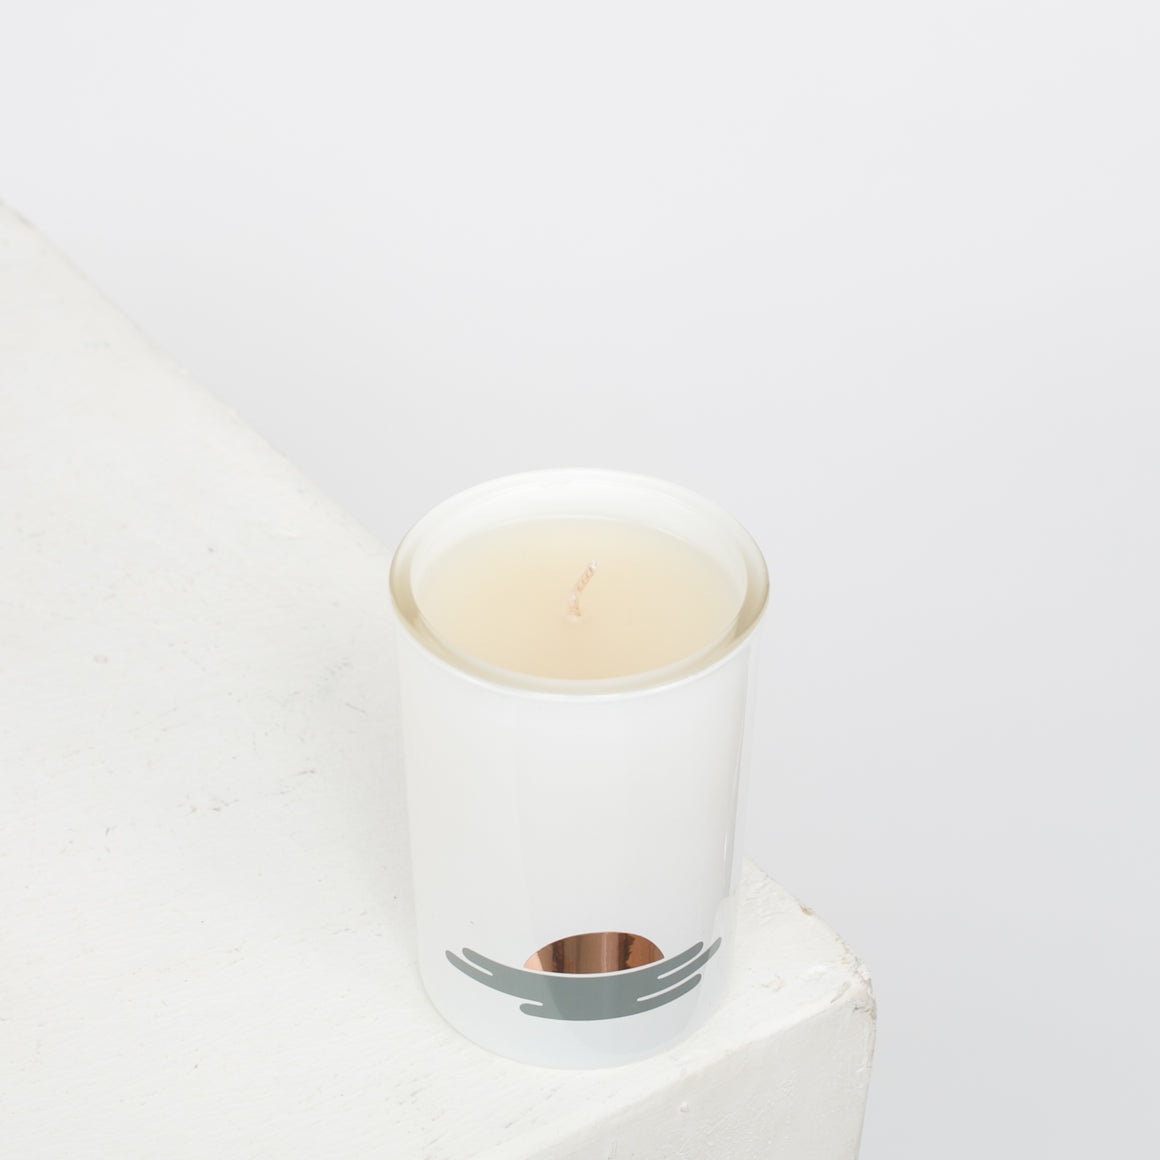 Mainely Manly Candle